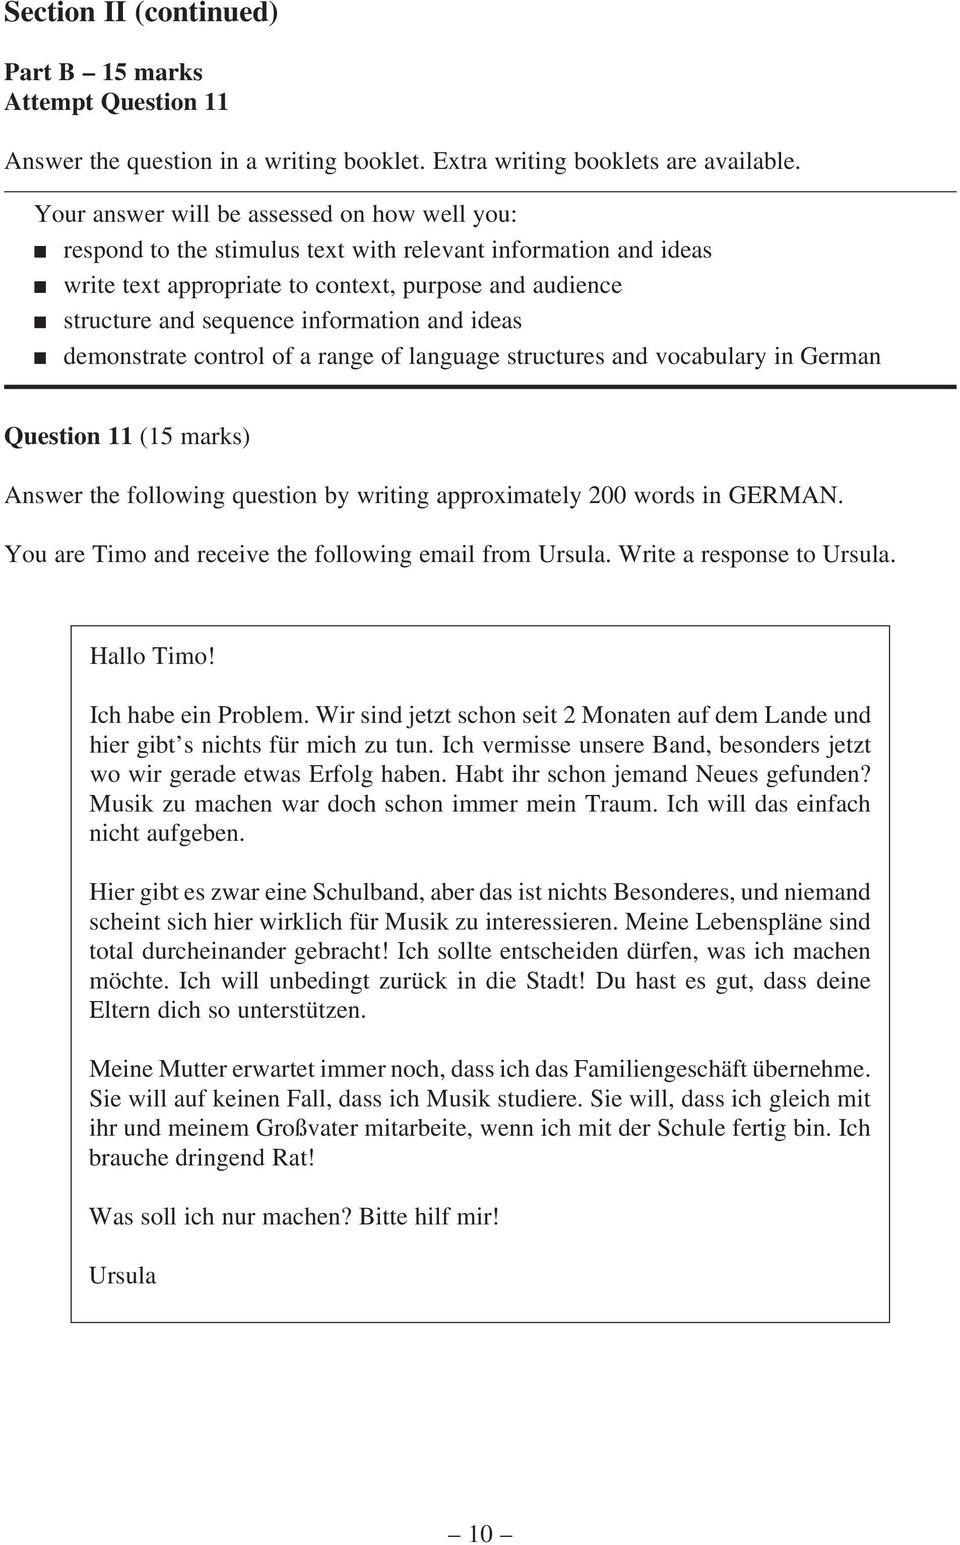 information and ideas n demonstrate control of a range of language structures and vocabulary in German Question 11 (15 marks) Answer the following question by writing approximately 200 words in